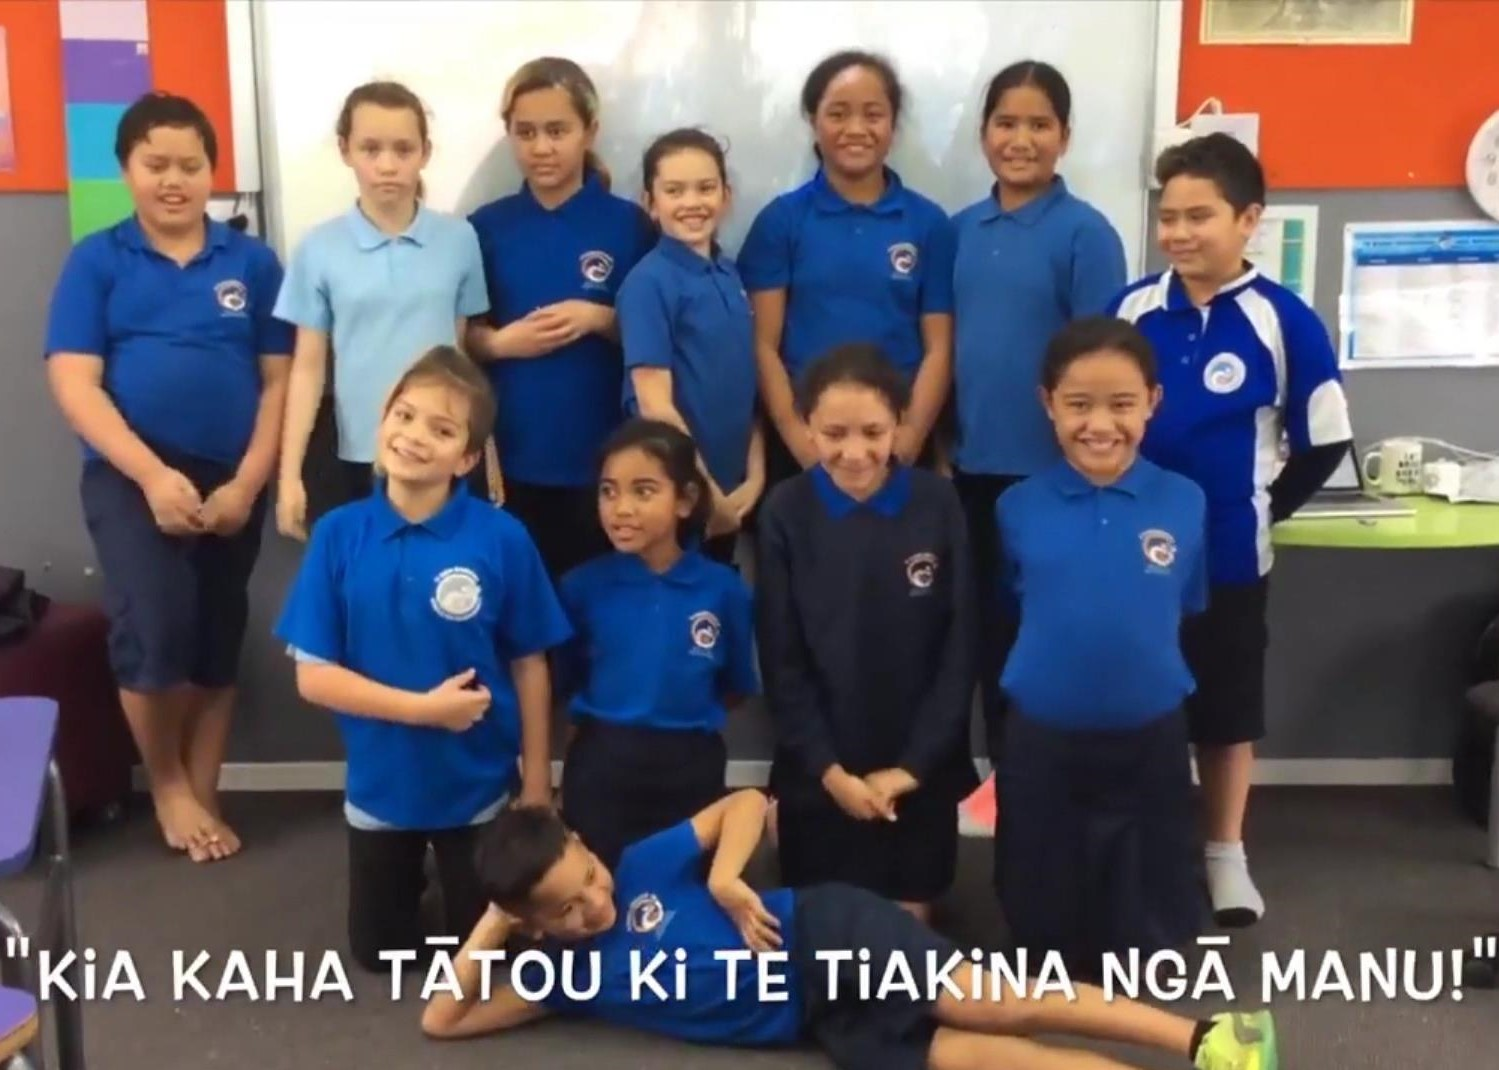 """Years 1-4 - 60 minute lesson-plan focus:Learn about Aotearoa's unique native birds and the threats they face via virtual reality!Extra resources:1) """"Squawk's Journey"""" - virtual reality experience 2) Make a nature scrapbook3) Bird watching!4) Zealandia trading card game5) Inquiry based learningCall to action: Tell your whānau about what you've learnt!"""